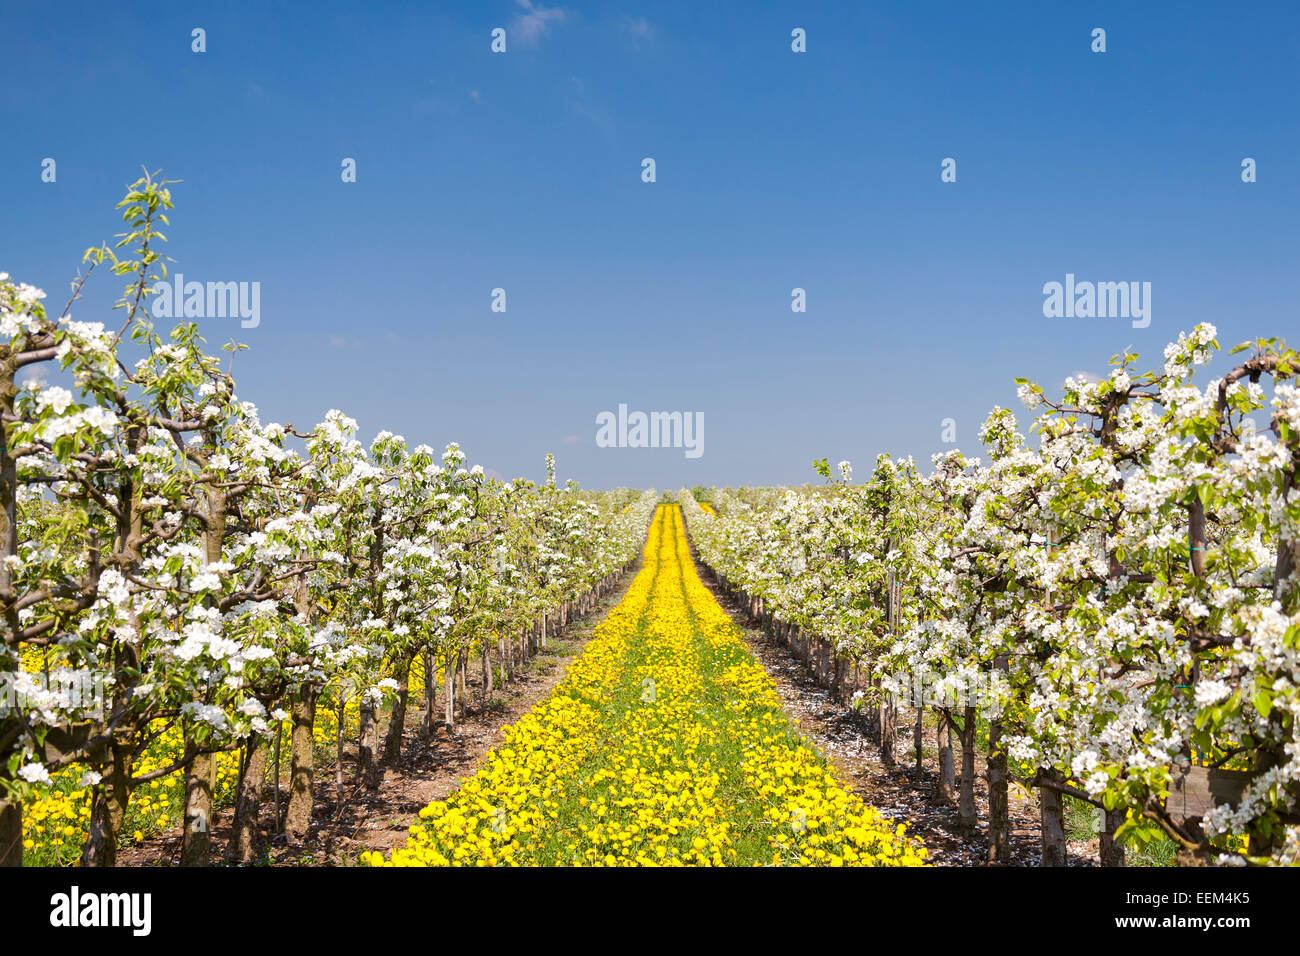 Fruit tree plantation, orchard, flowering fruit trees growing in rows, Dandelion (Taraxacum officinale) growing - Stock Image